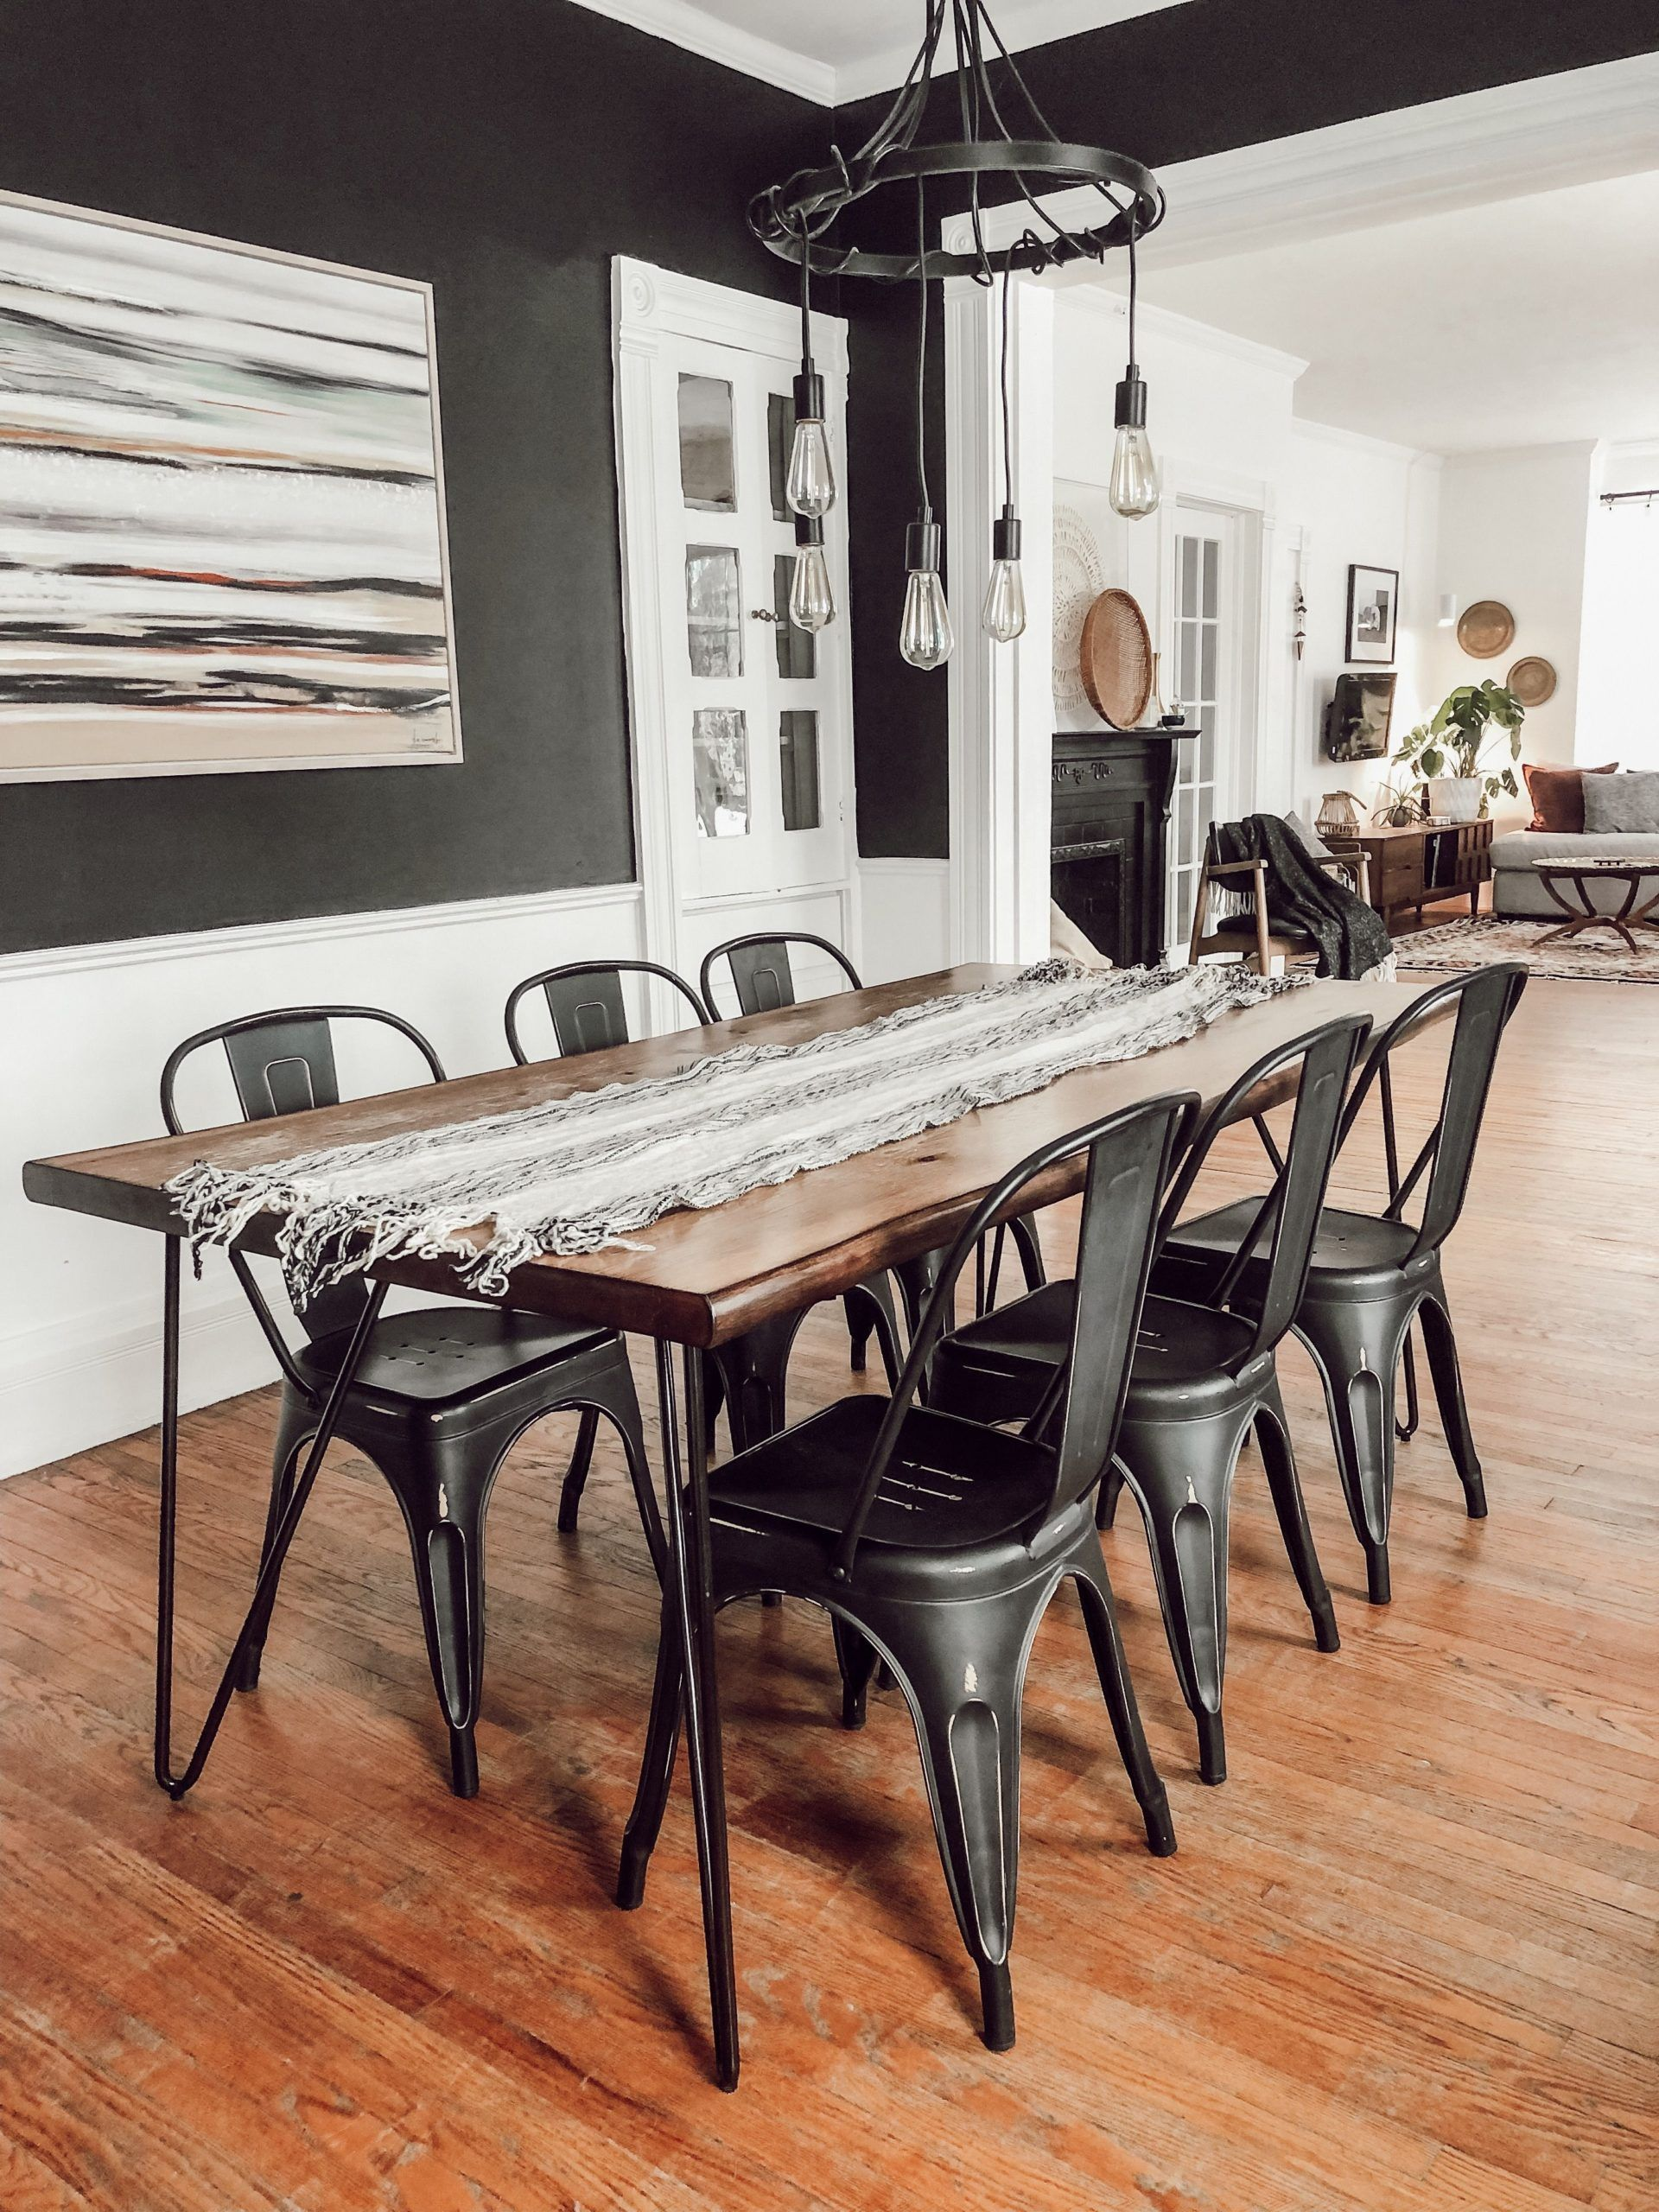 Funky Victorian Residence Tour Black And White Eating Room With Industrial Meta Black And White Dining Room White Dining Room Dining Room Industrial